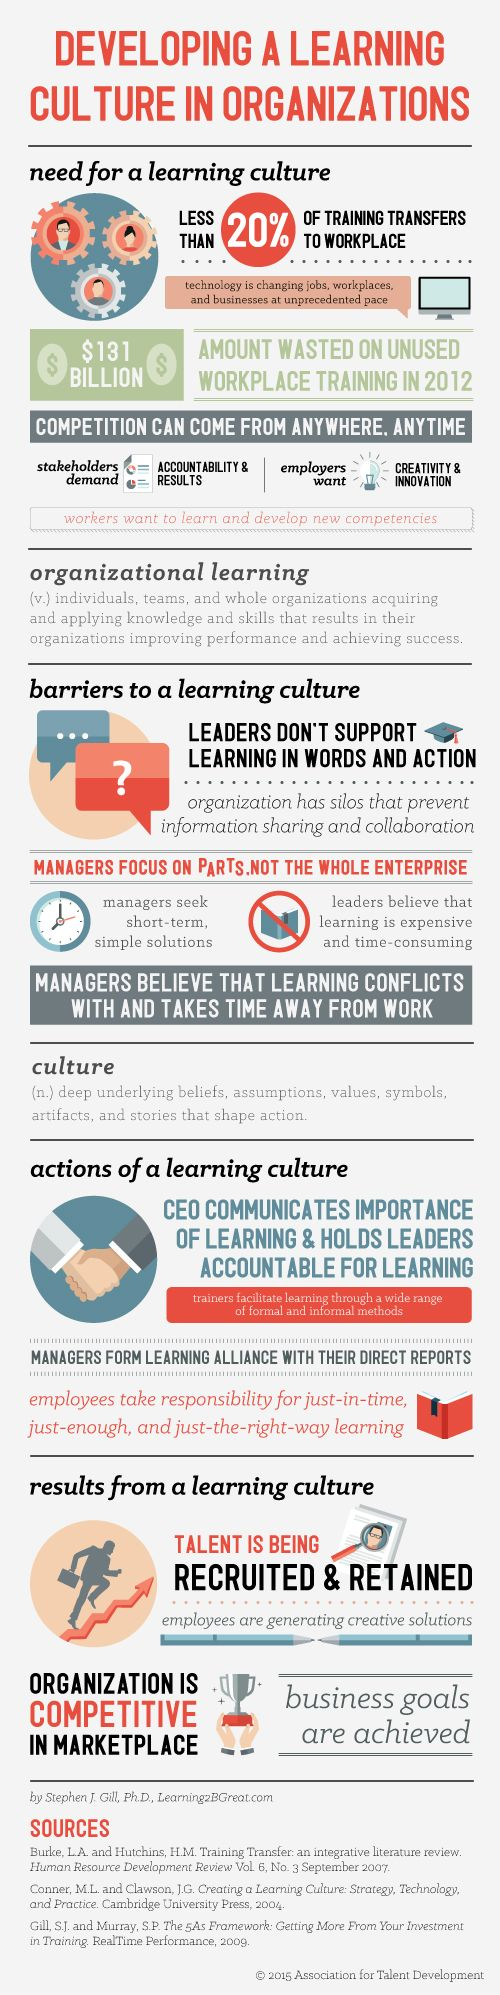 Developing a Learning Culture Infographic Why do organizations even need learning?